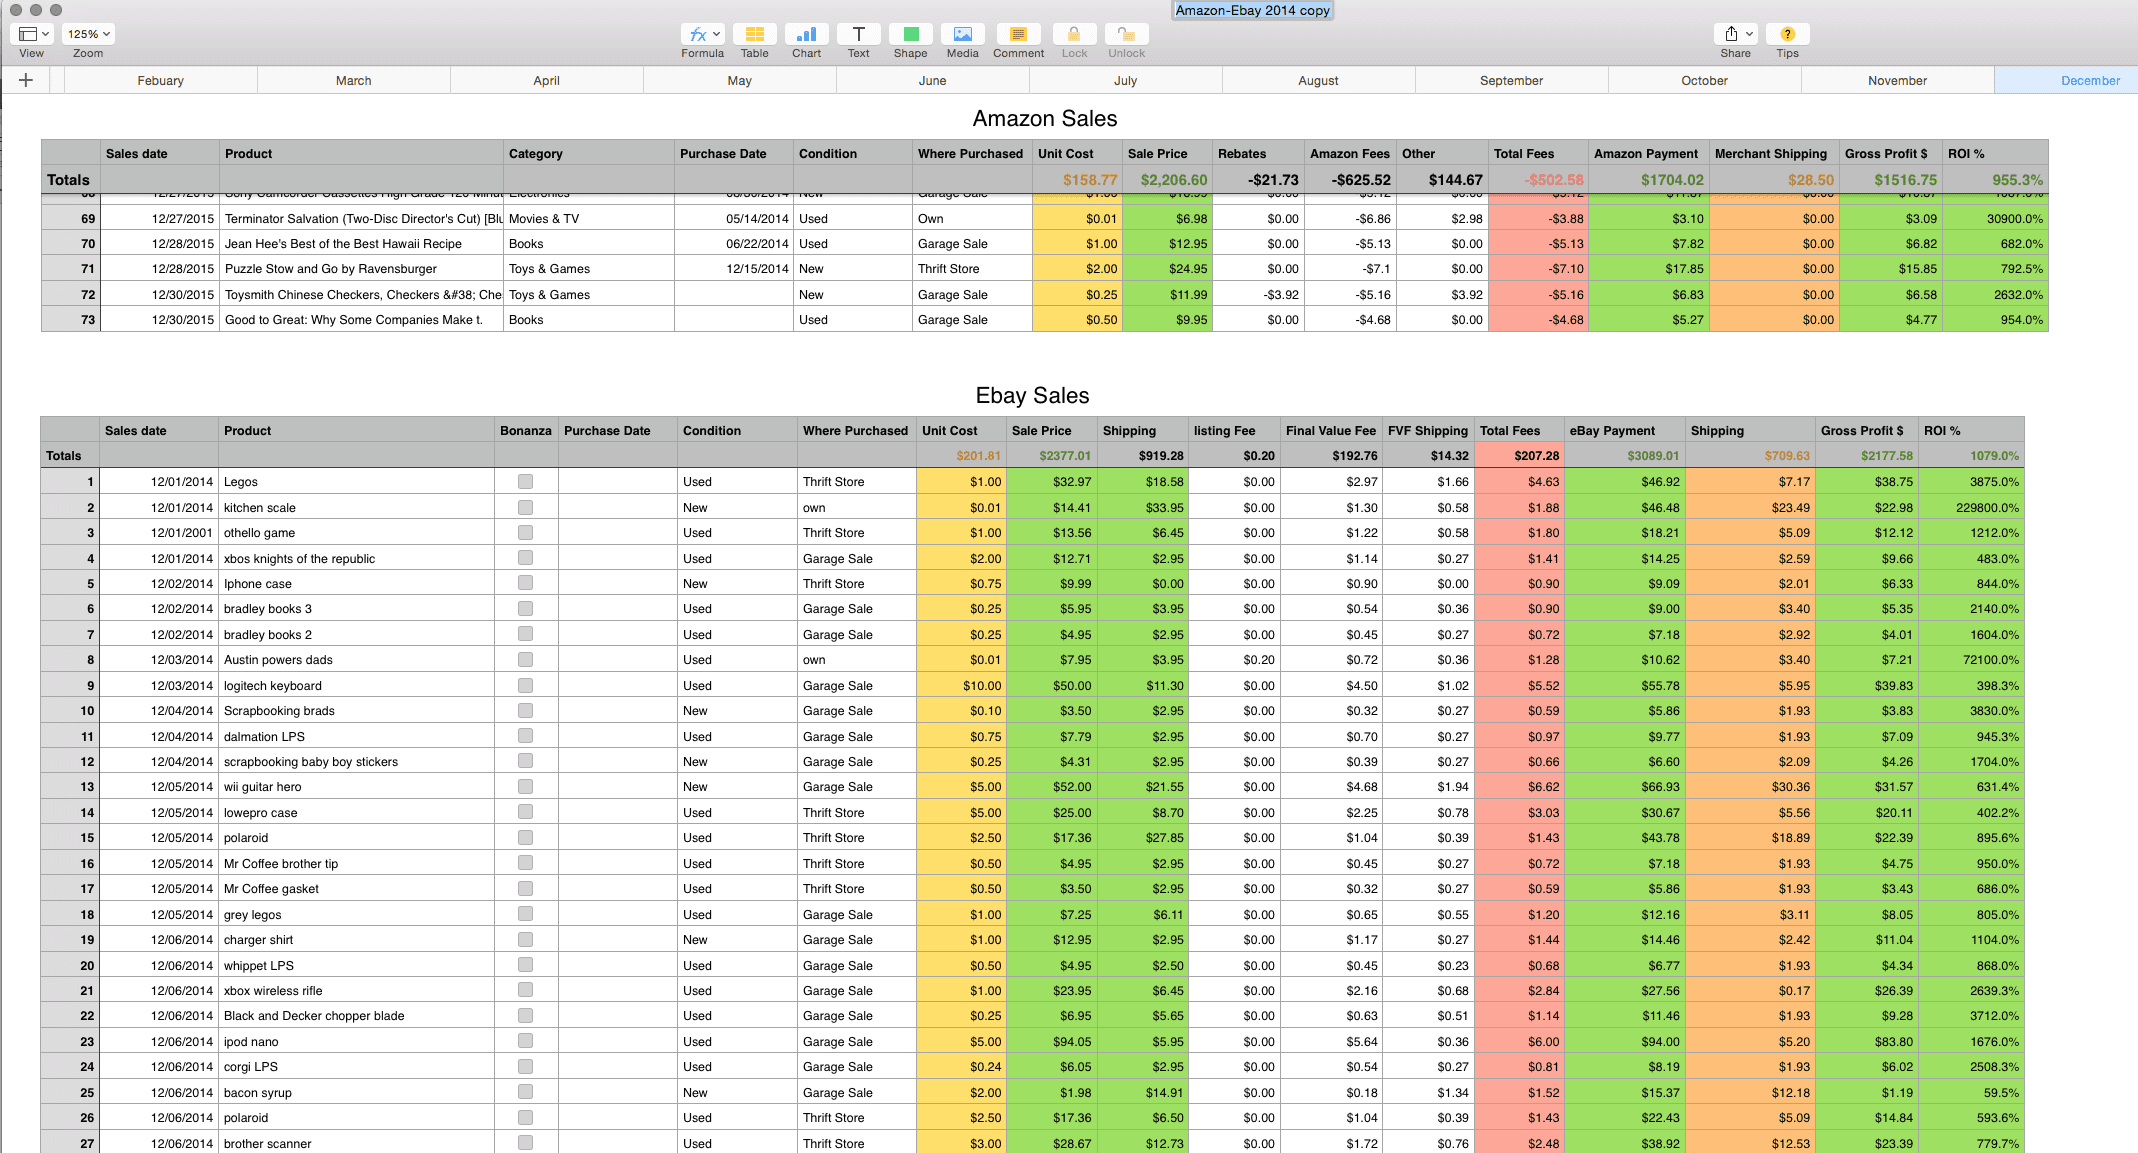 Free Sales Tracking Spreadsheet Template Sales Tracking Spreadsheet Template Spreadsheet Templates for Busines Spreadsheet Templates for Busines Free Sales Tracking Spreadsheet Template